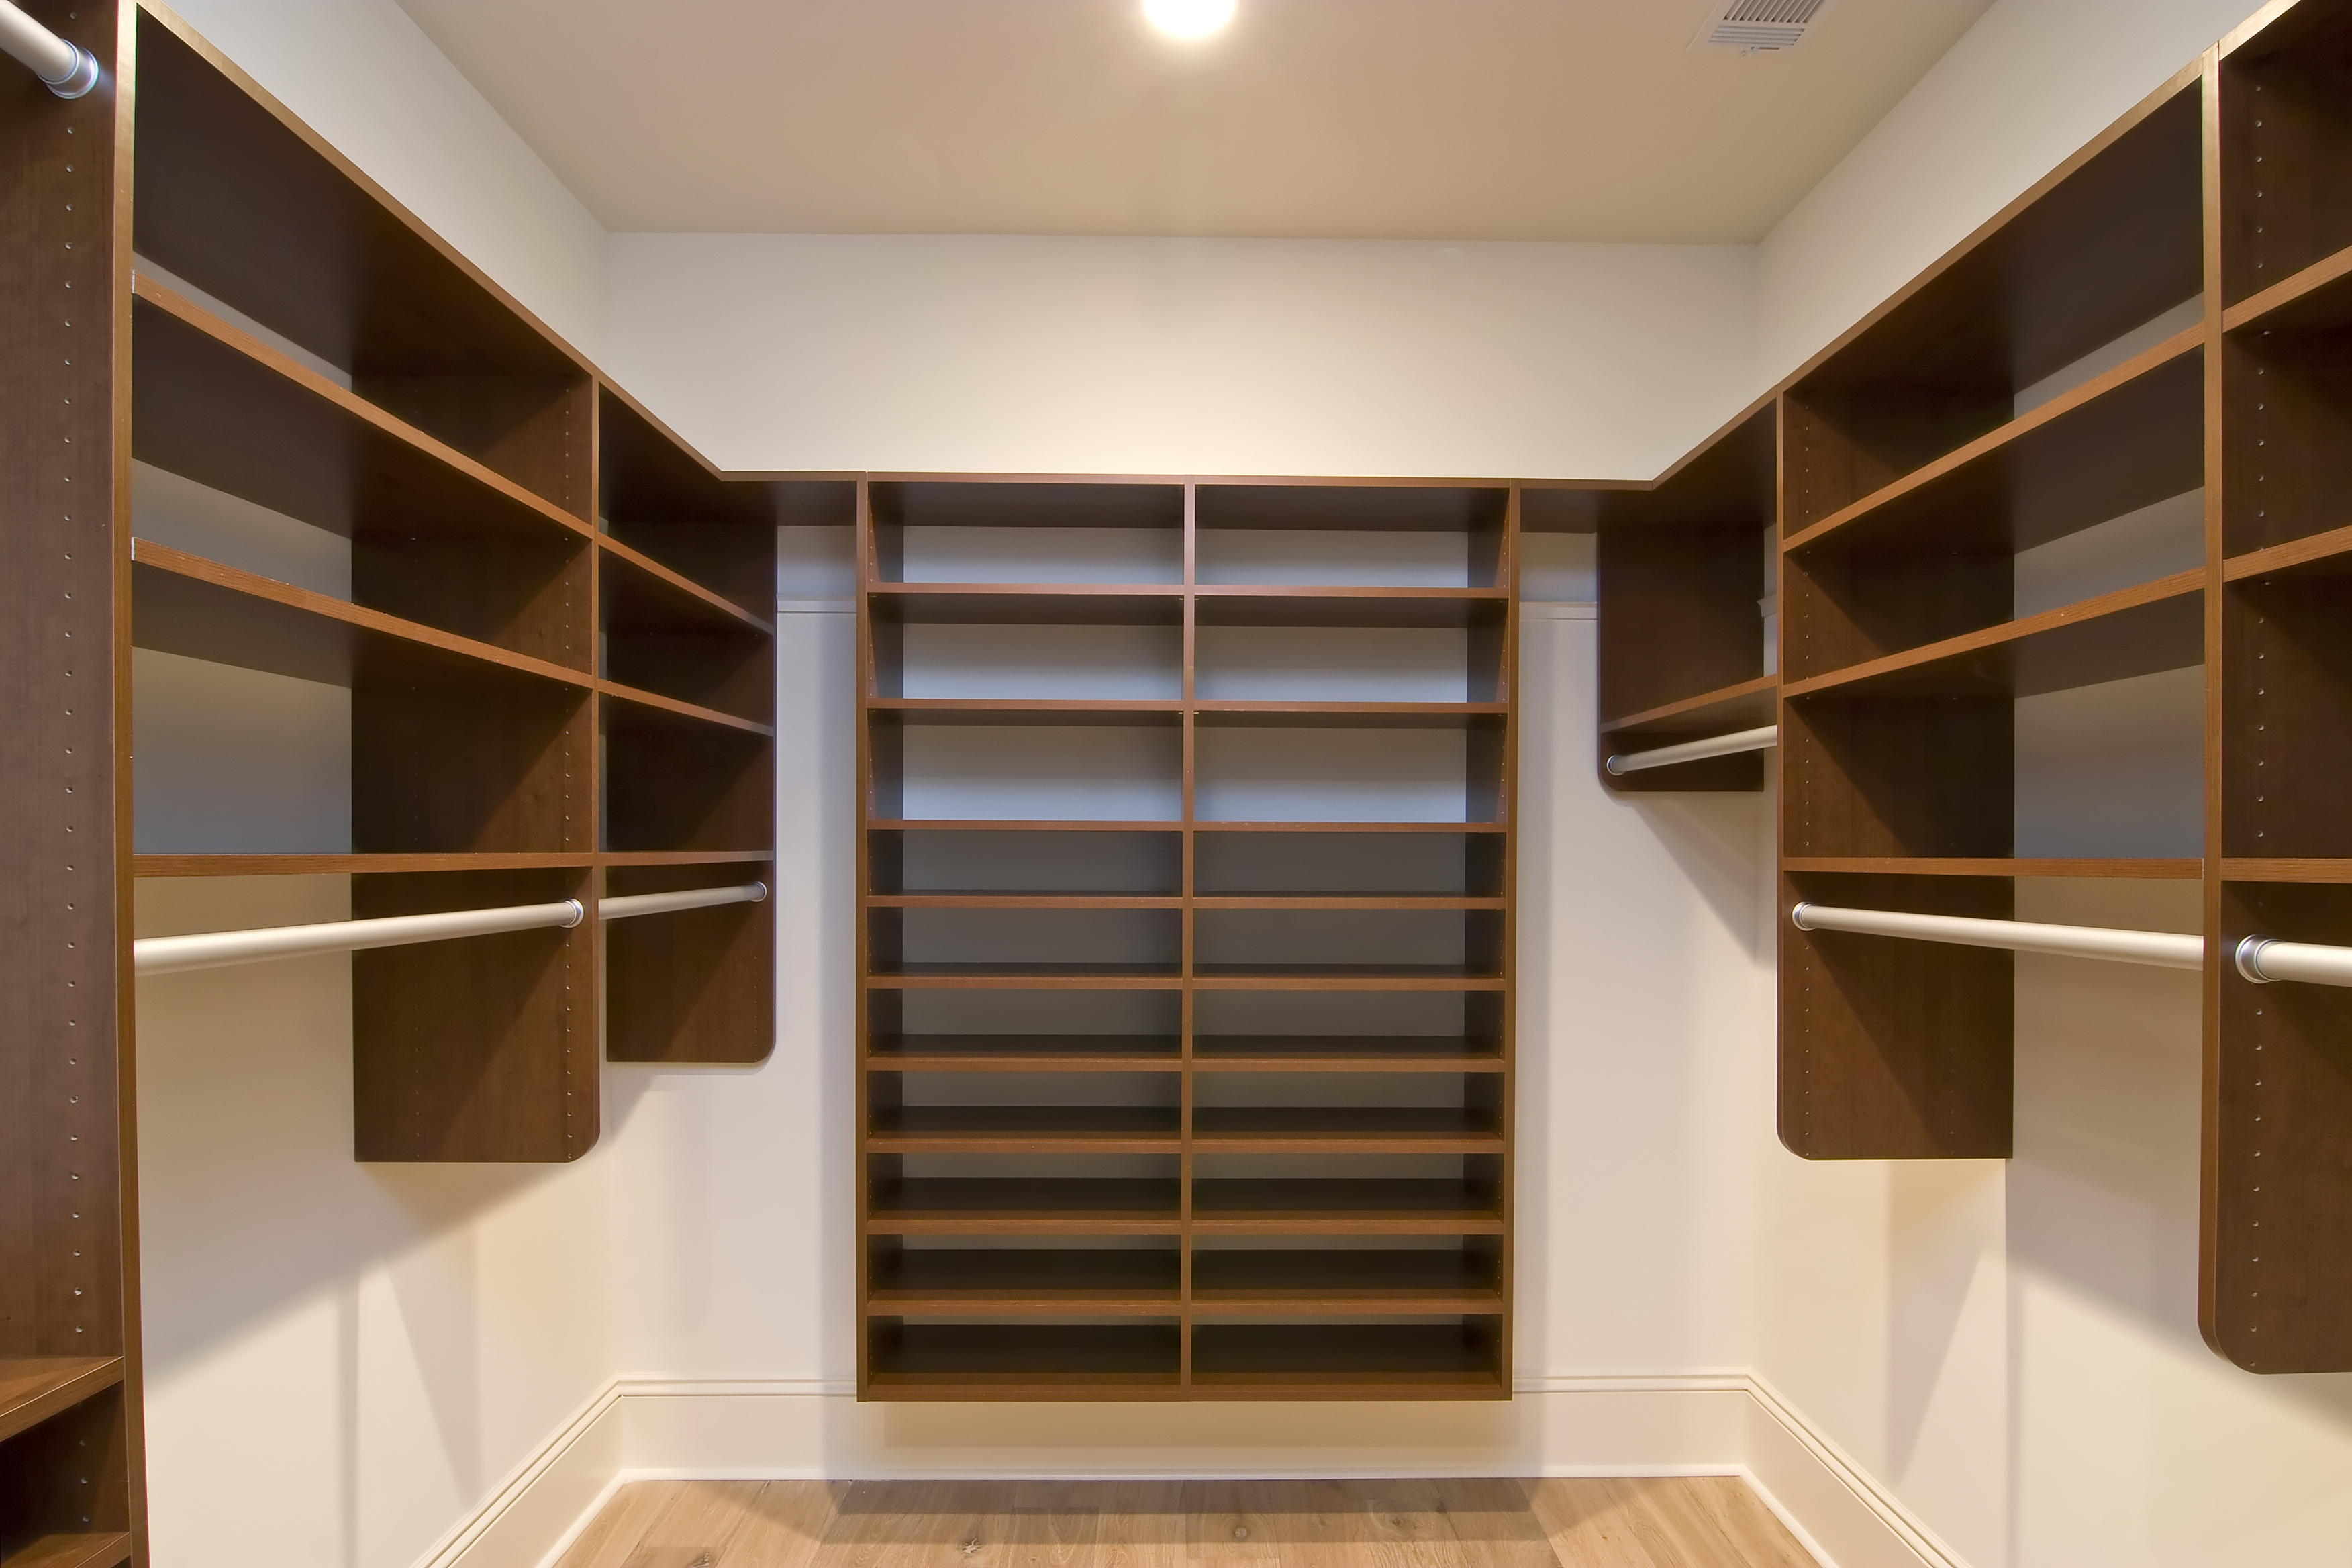 Unique fitted walk in wardrobes with a perfect layout consiting of floating shelves and combination of long hanging rails to achieve maximum storage